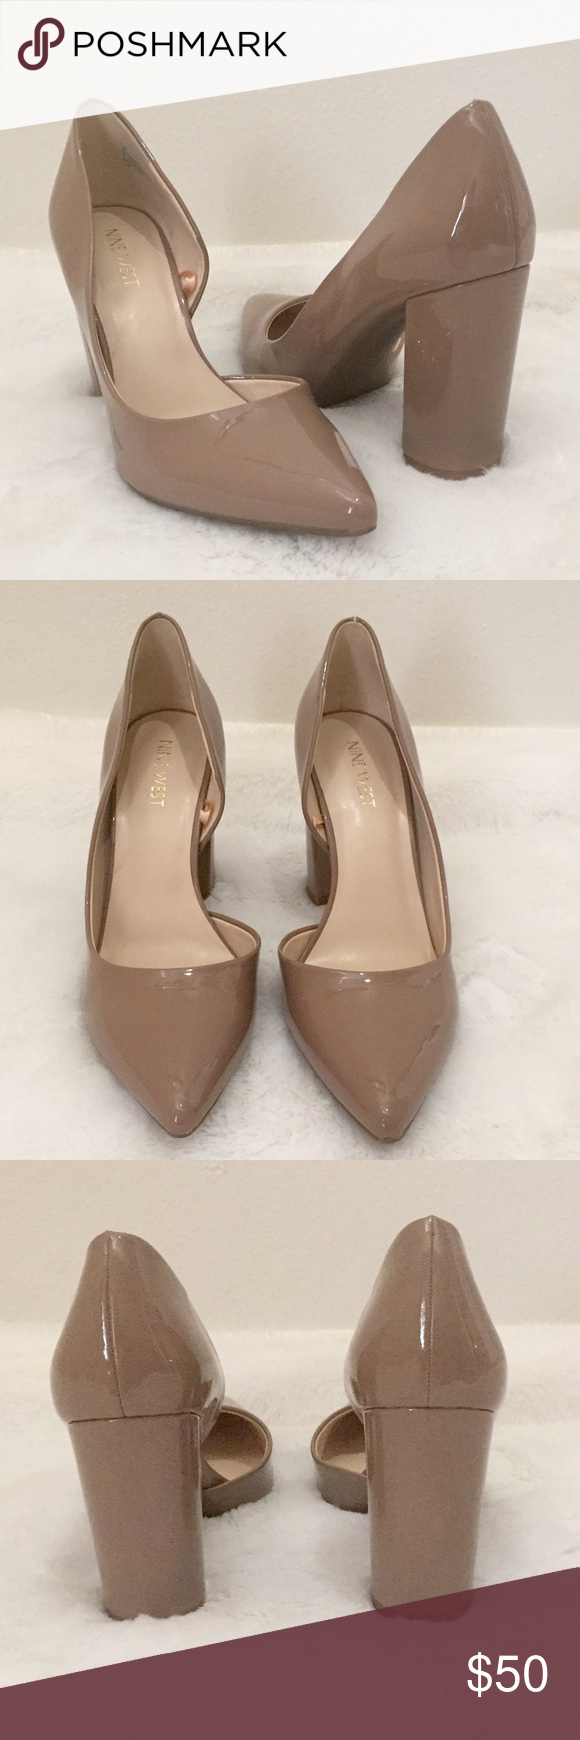 b8b262ce3f Nine West Anisa Heels NEW✨Nine West Anisa Pumps. Nude patent faux-leather  d'Orsay Style Pumps with stacked heel and pointed toe. These are perfect  for the ...